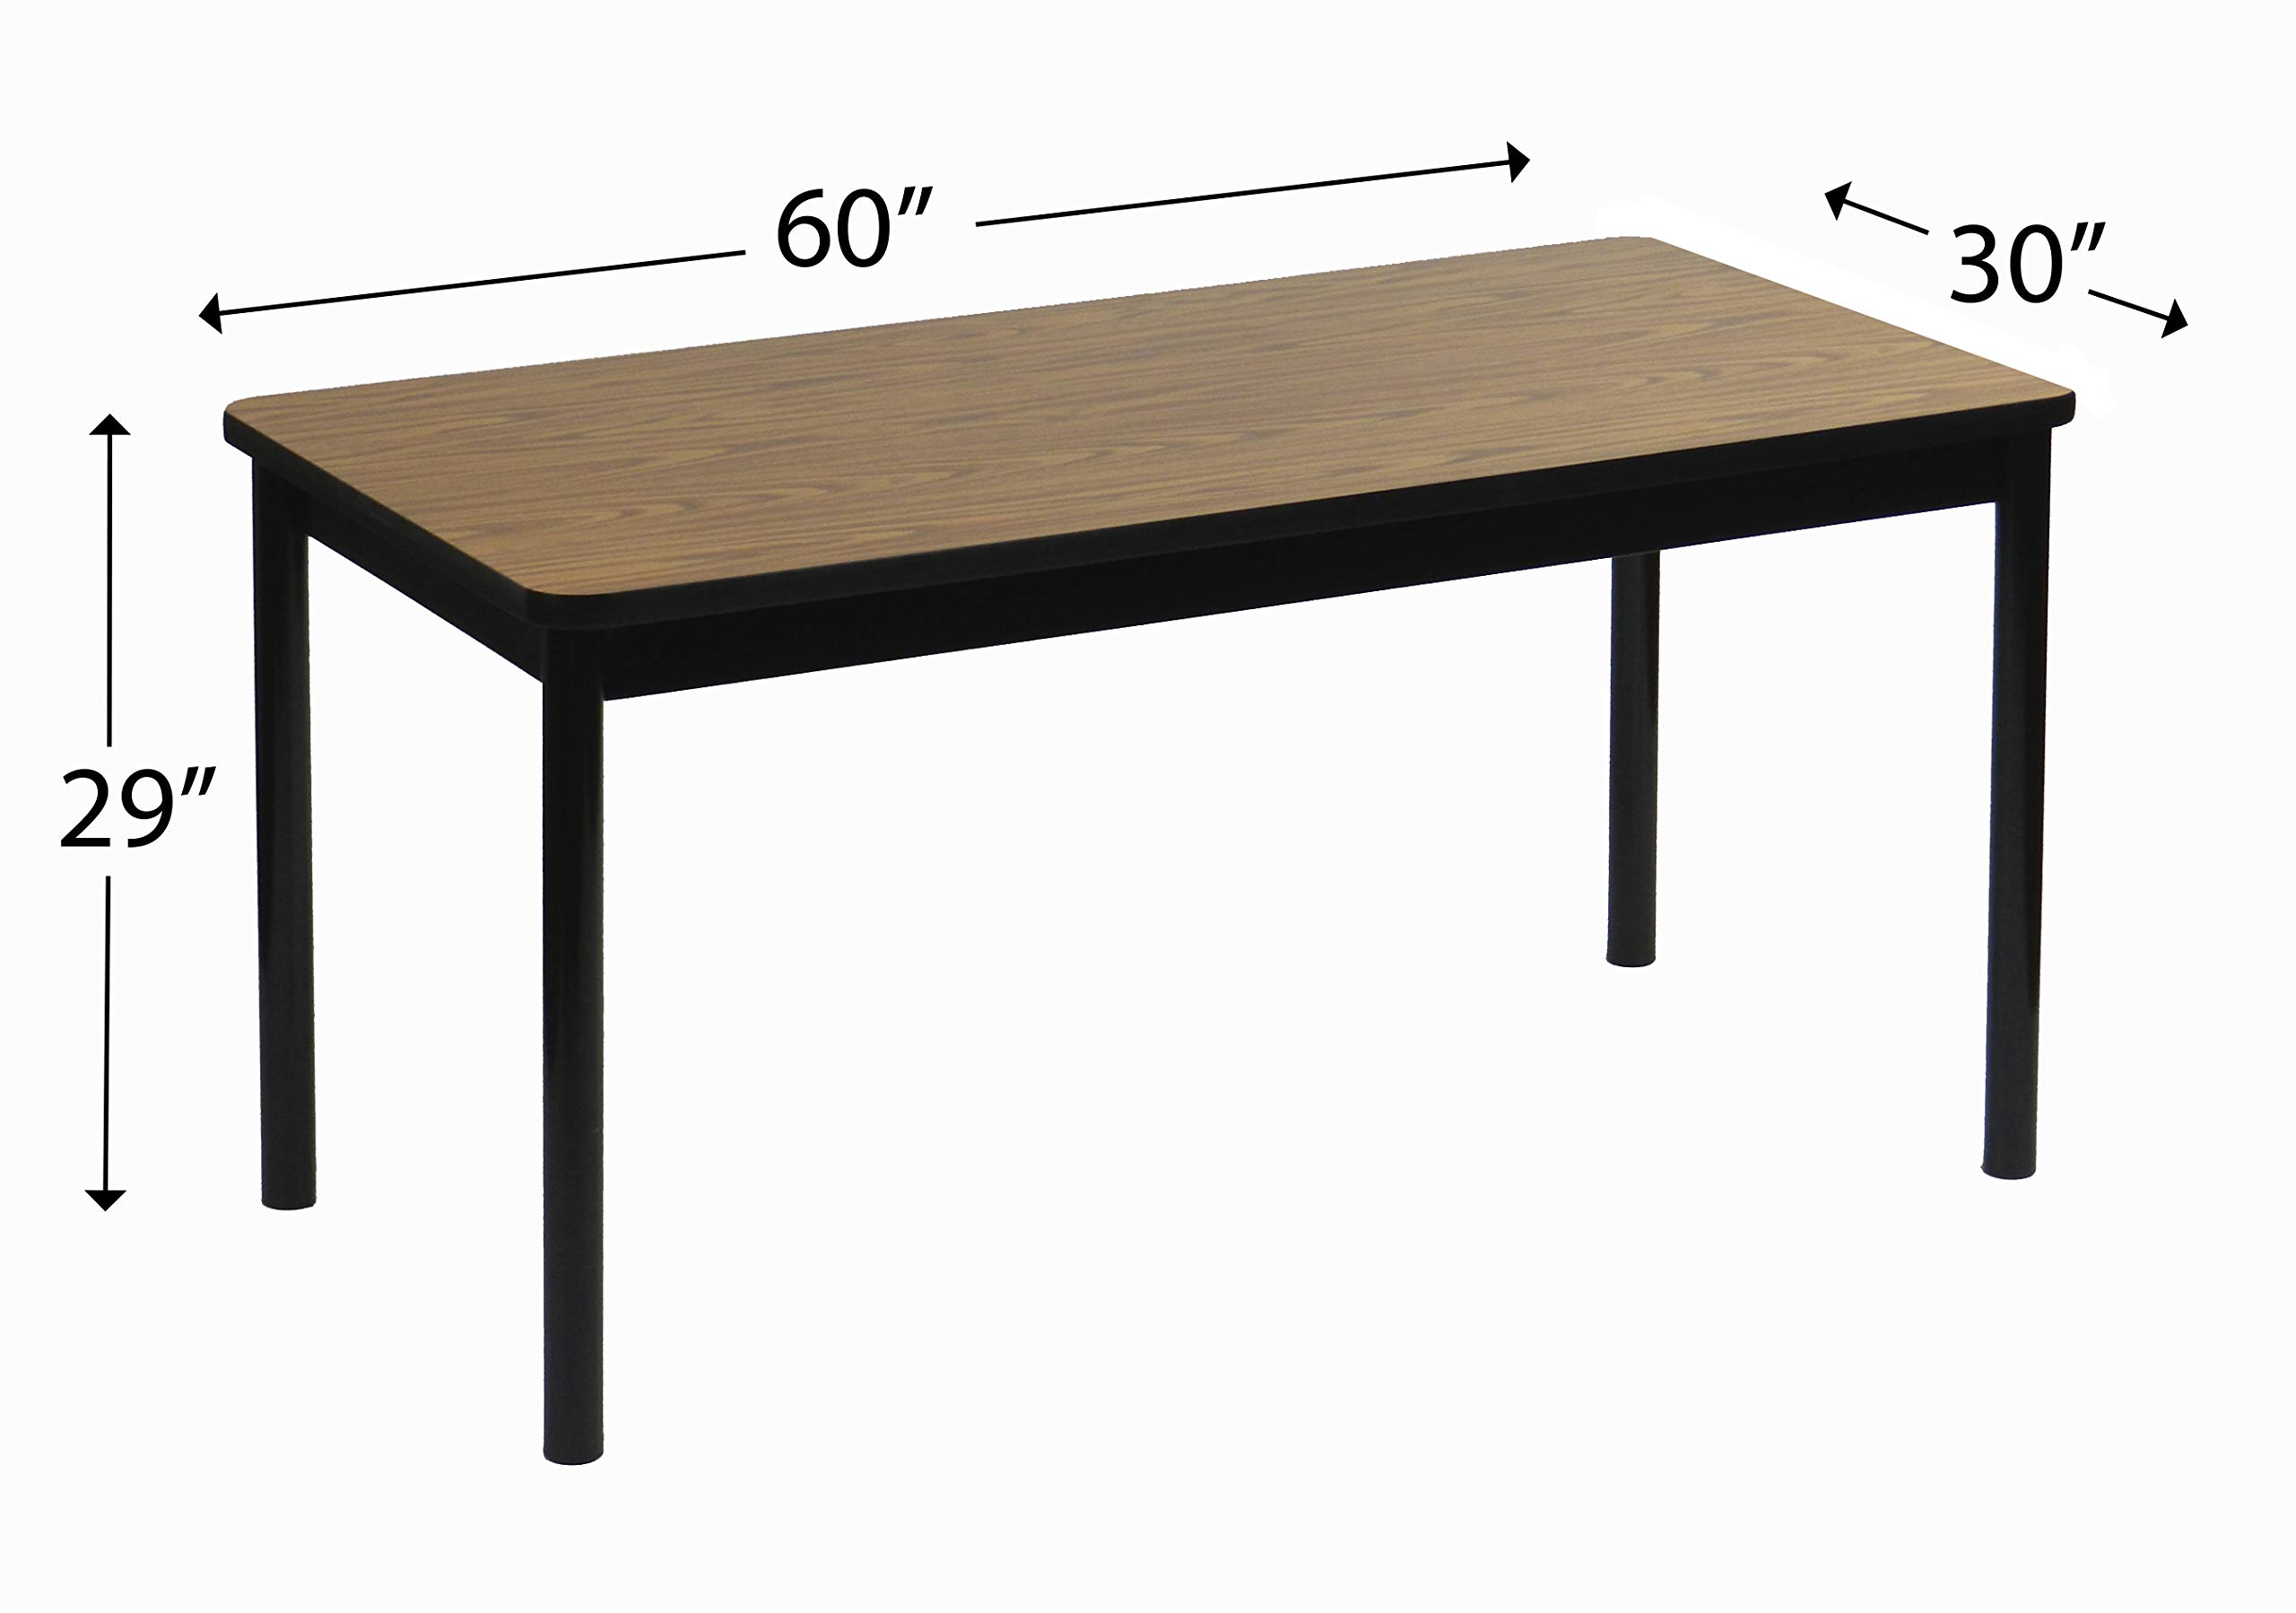 Correll 30''x60'' Office & Utility Work Table, Rock Solid Commercial Quality, Medium Oak High-Pressure Laminate, Black Frame (LR3060-06) by Correll (Image #3)